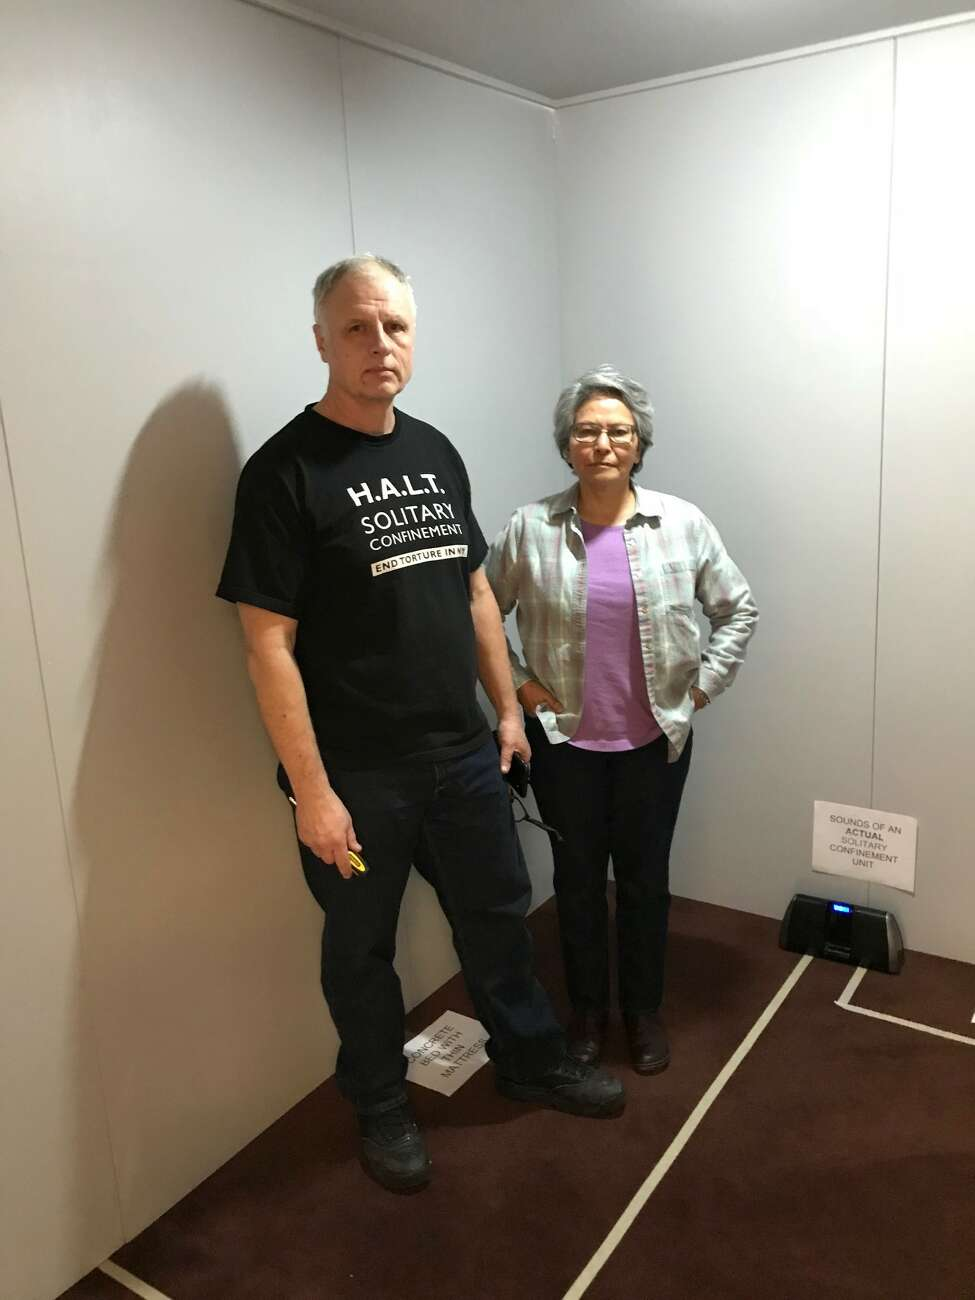 Alicia Barraza, left, and her husband, Douglas Van Zandt, inside a replica solitary confinement cell set up on Sunday, March 18 at Siena College for a performance of